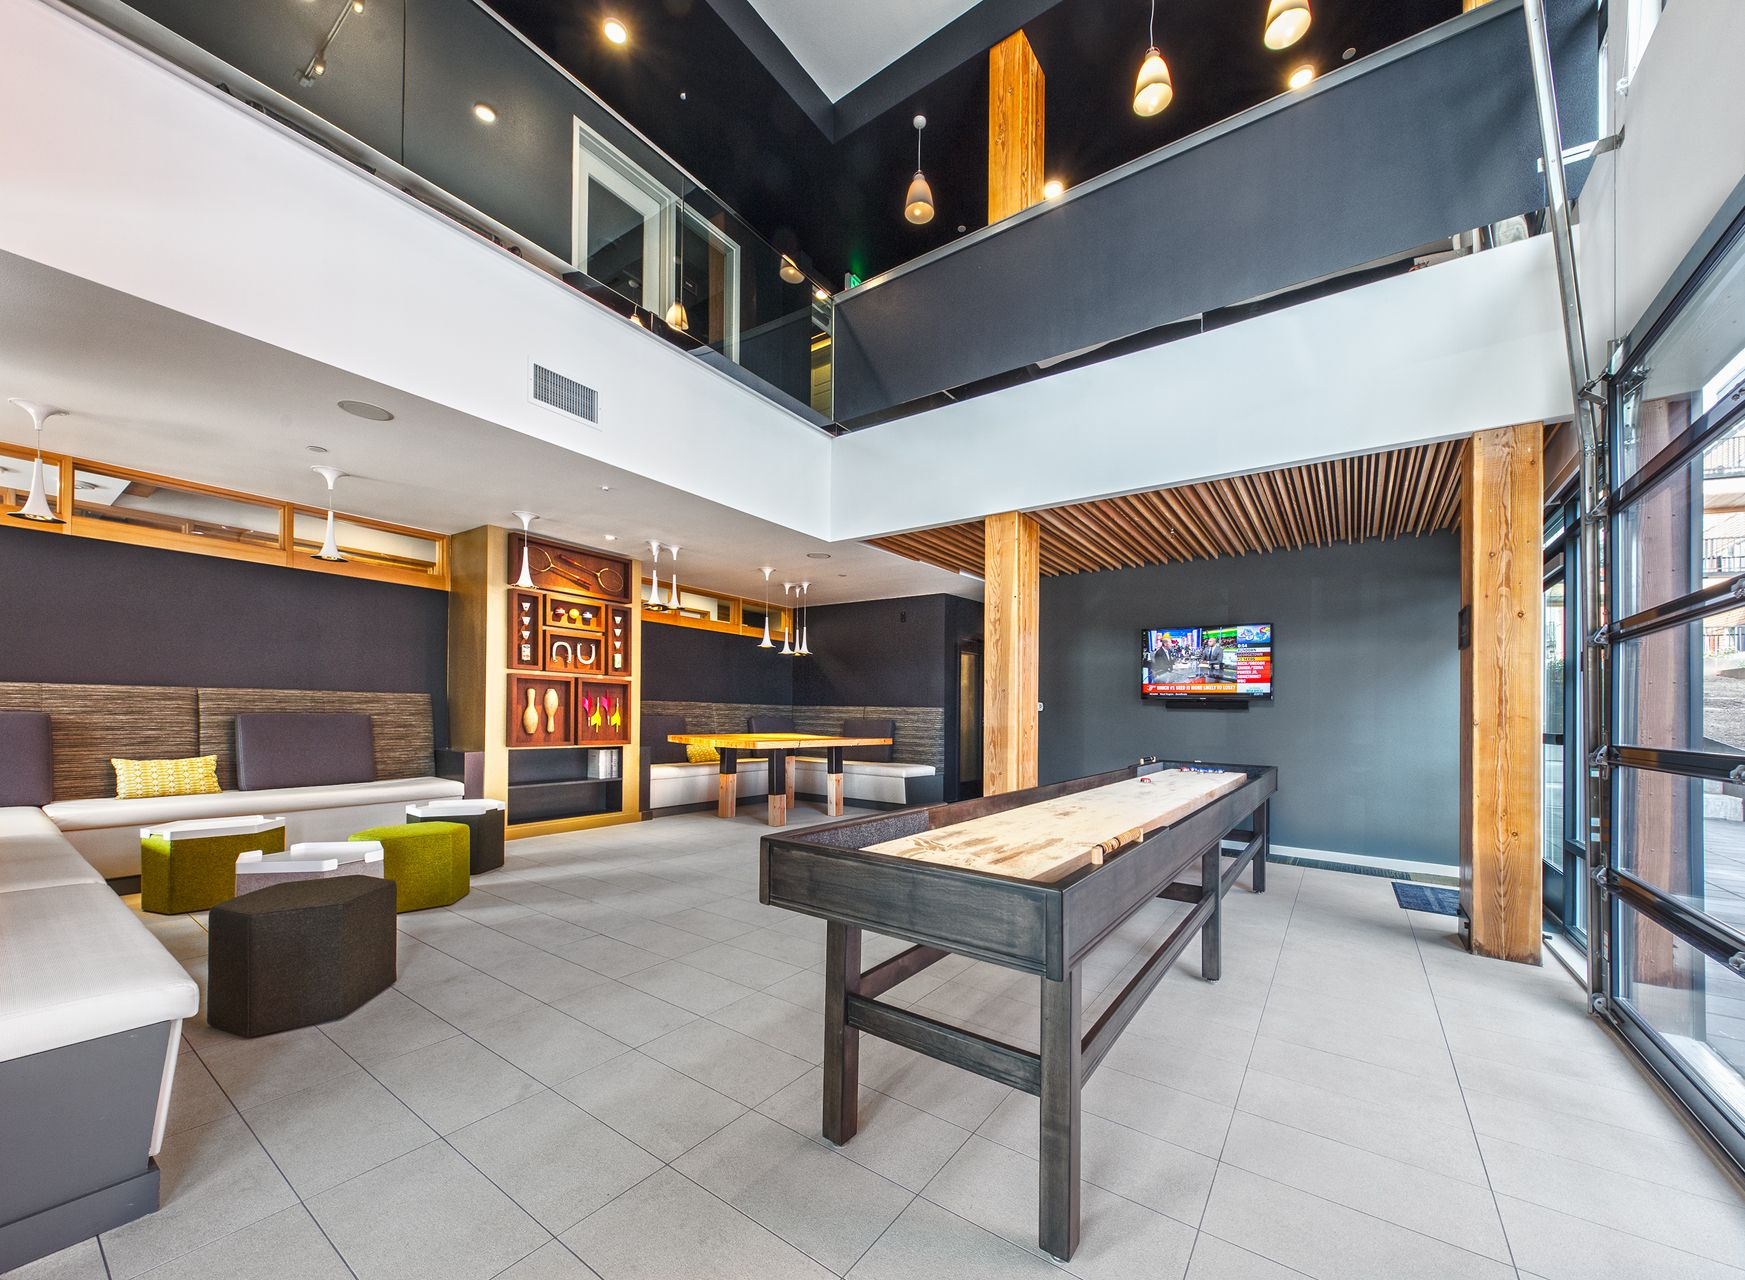 The club room has a shuffleboard and garage doors able to